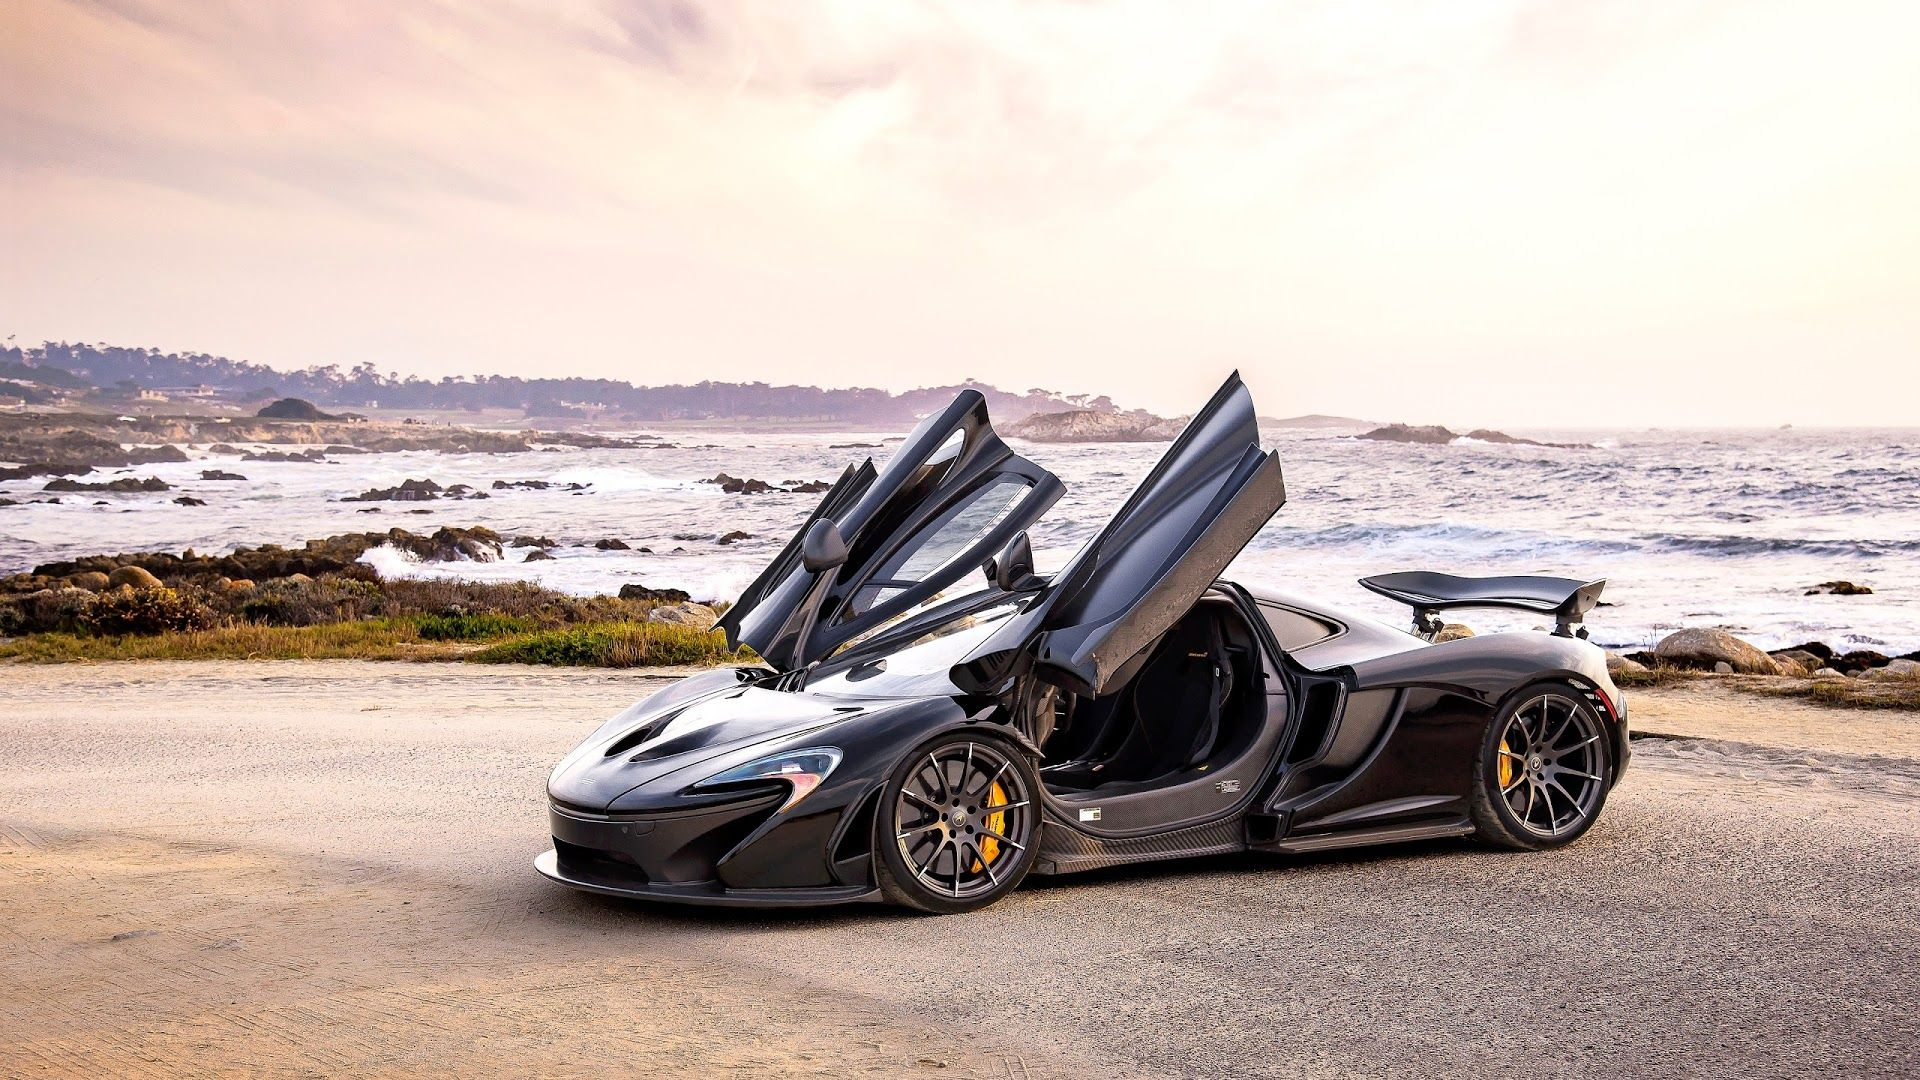 Mclaren P1 Wallpaper Desktop Bn9 Cars Super Sport Cars Cars